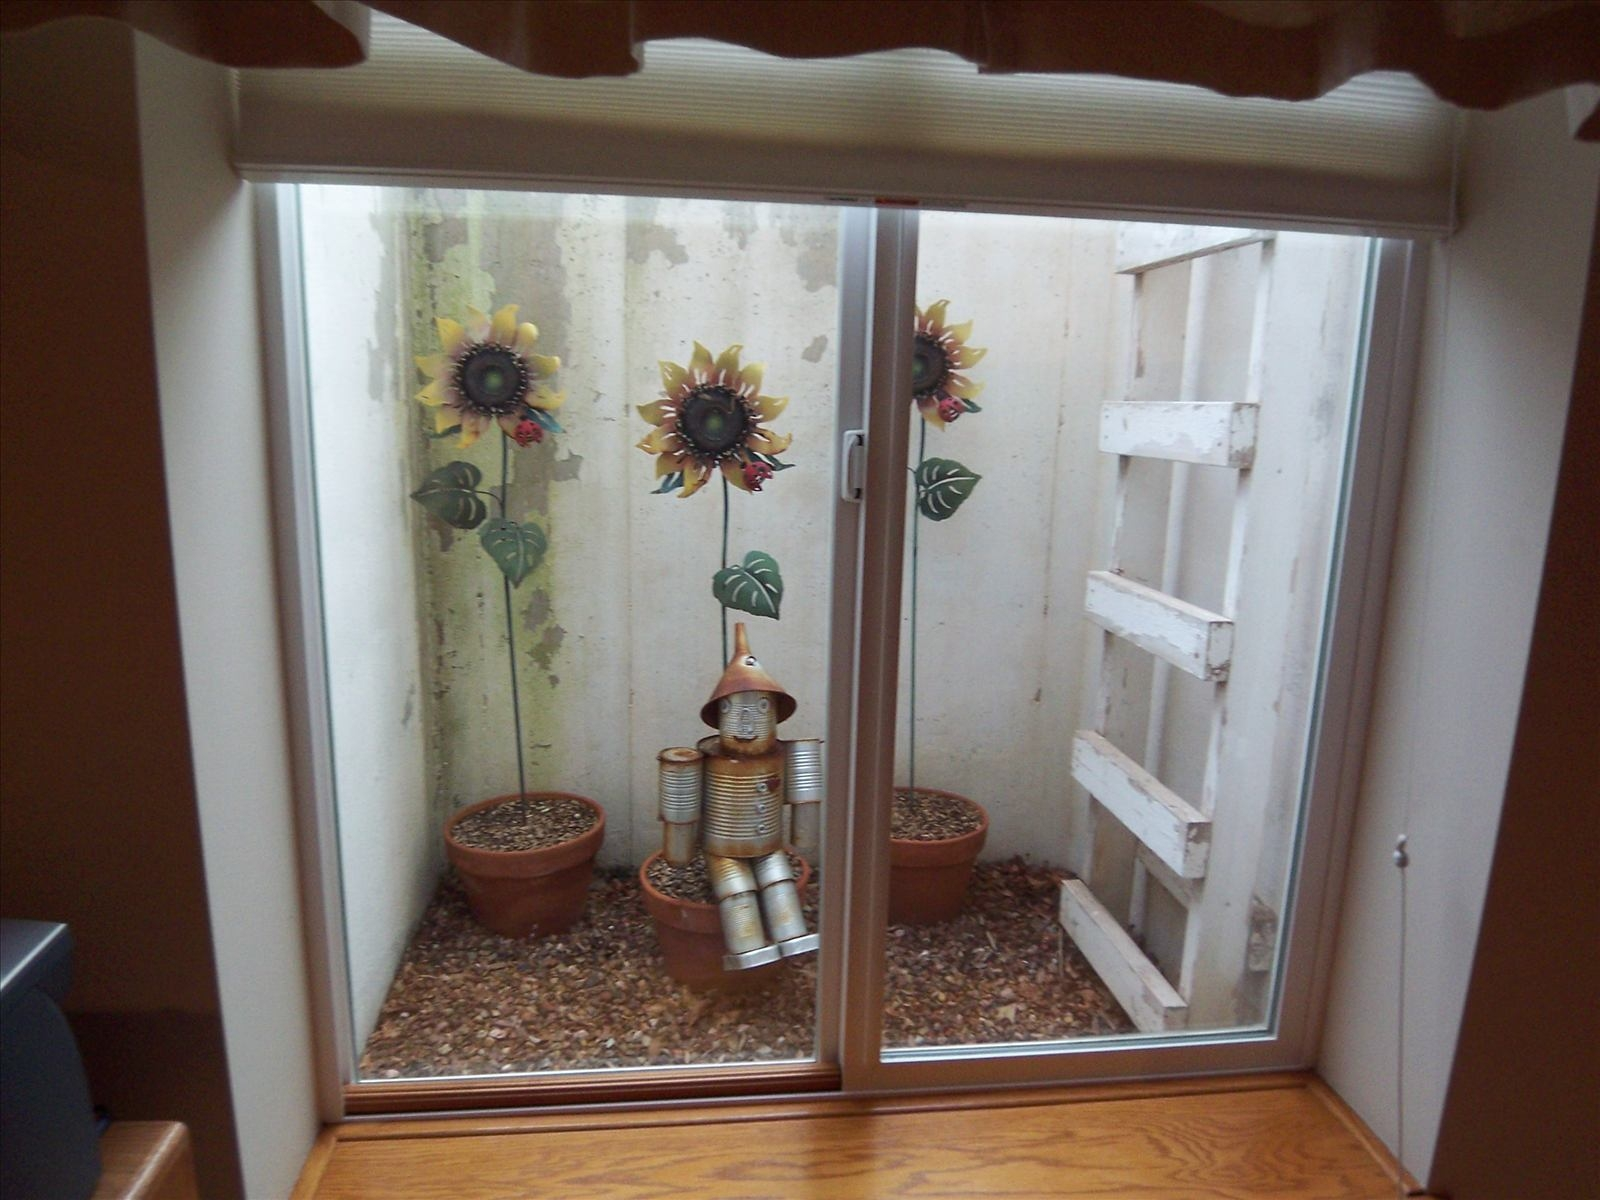 Basement Window Well Decorative Liners Basement Window Well Decorative Liners kansans love basements and we have many kinds examples of the 1600 X 1200